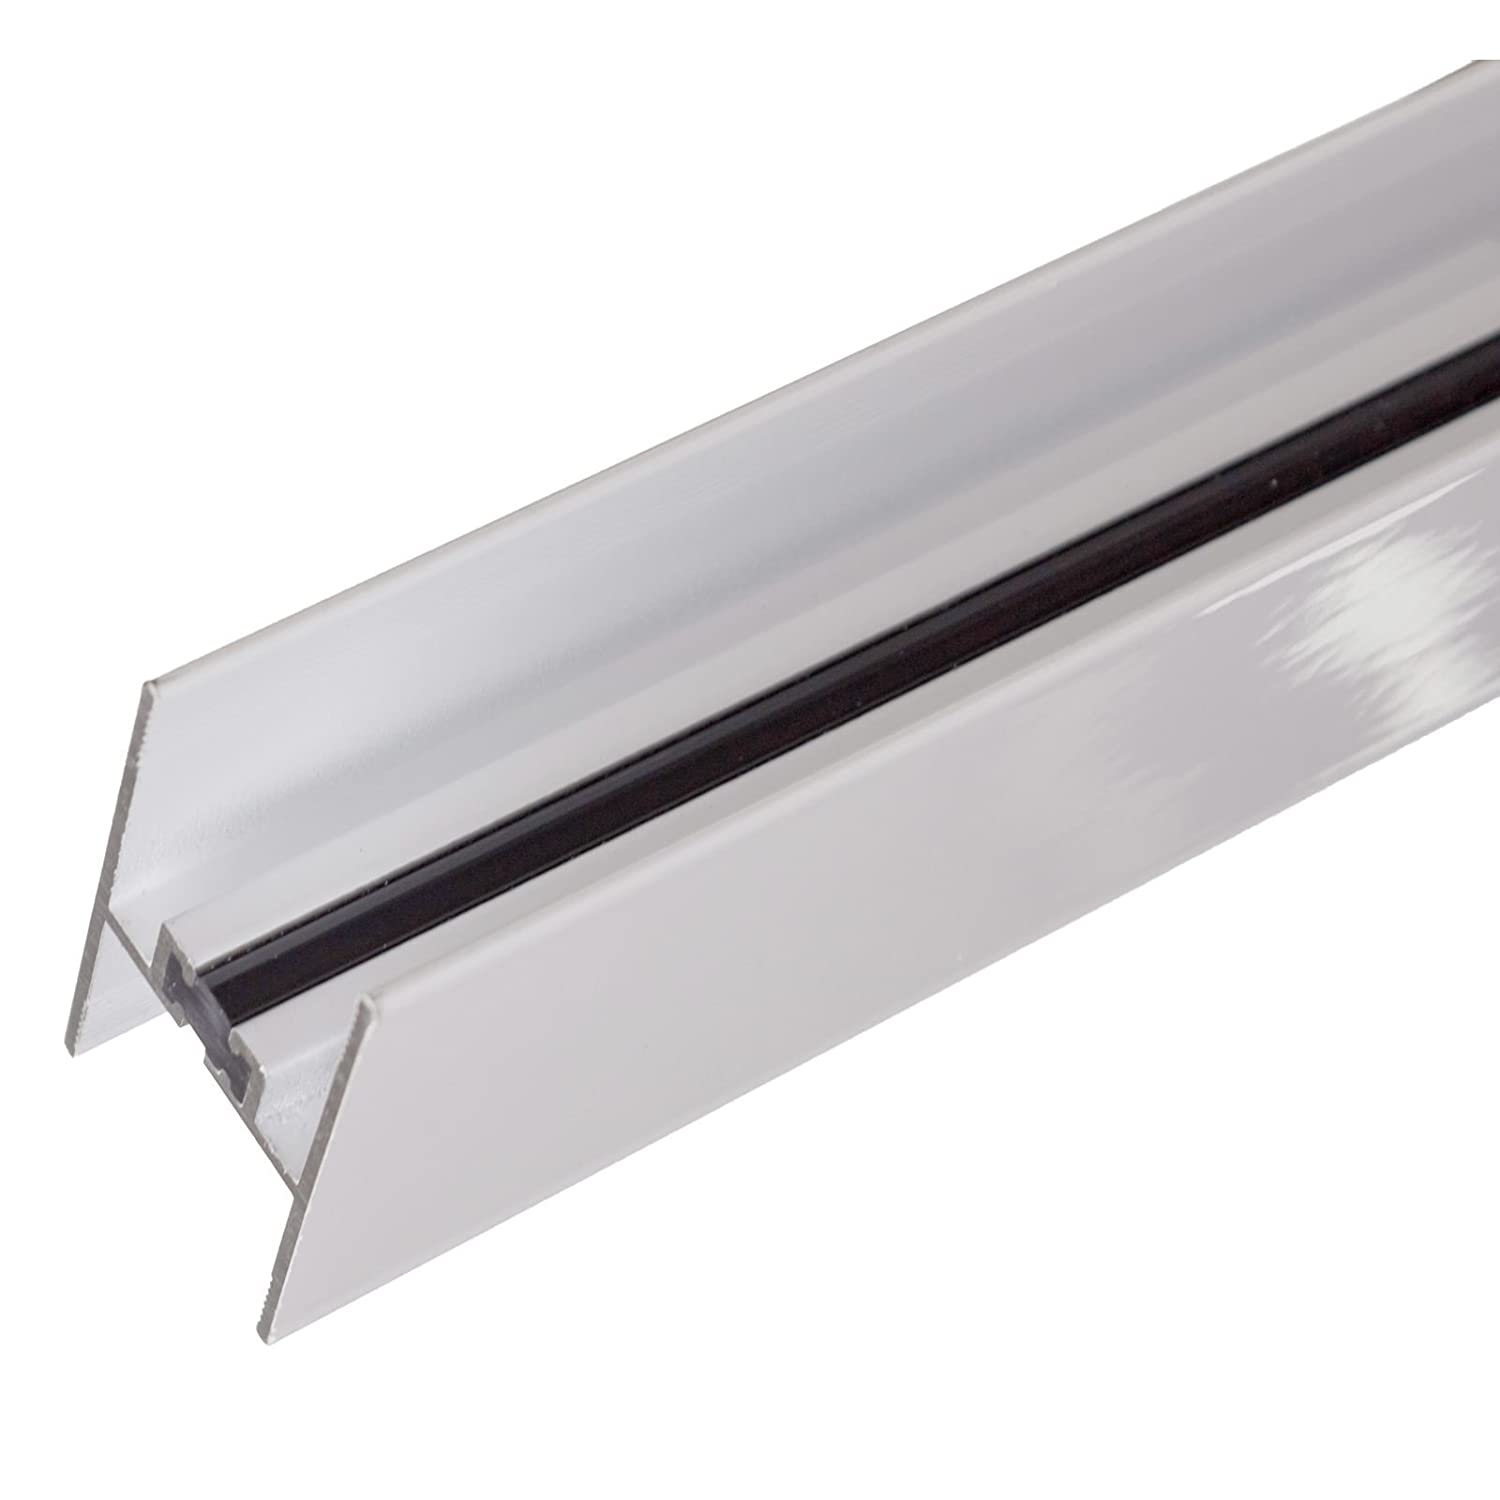 White 24/25mm Aluminium Muntin Bar Glass Unit Polycarbonate Joint Strip Thermally Broken Glazing Connector 2.1M Conservatory Roof Truly PVC Supplies